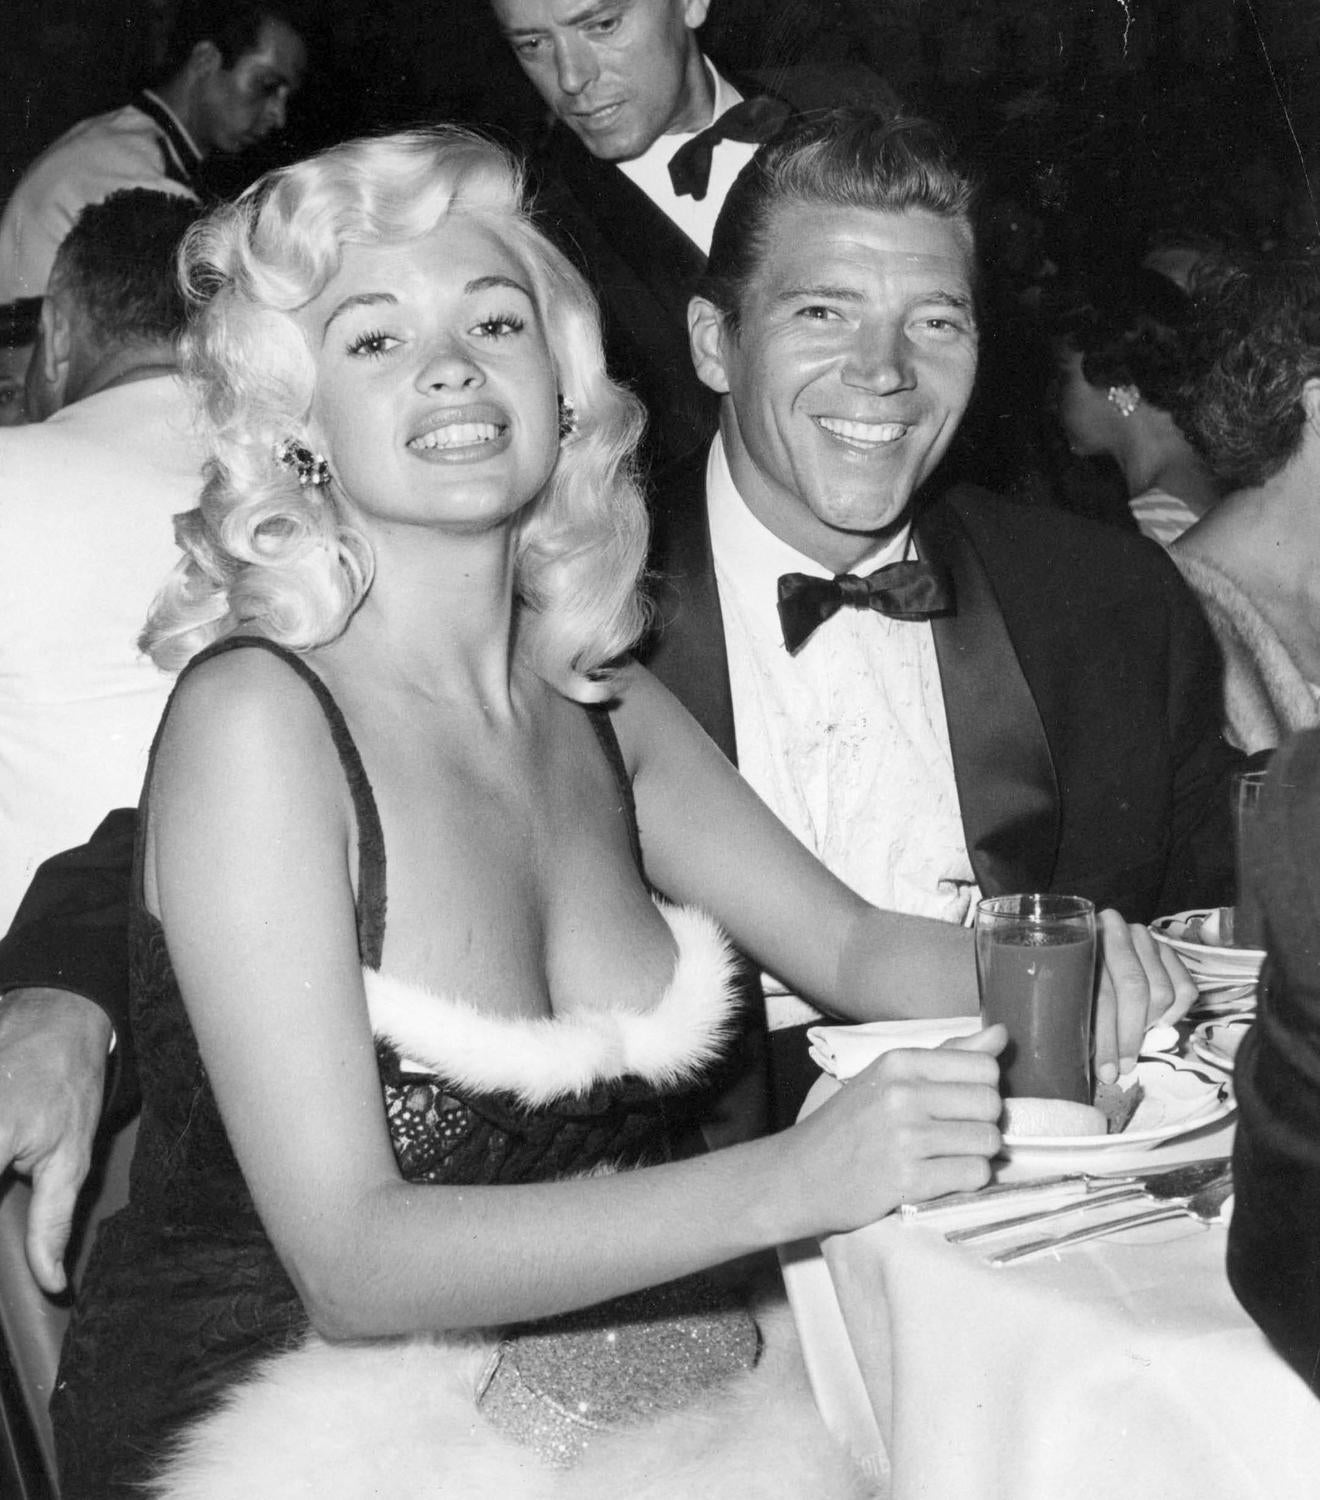 Unknown stunning jayne mansfield for sale at 1stdibs for Jayne mansfield and mickey hargitay